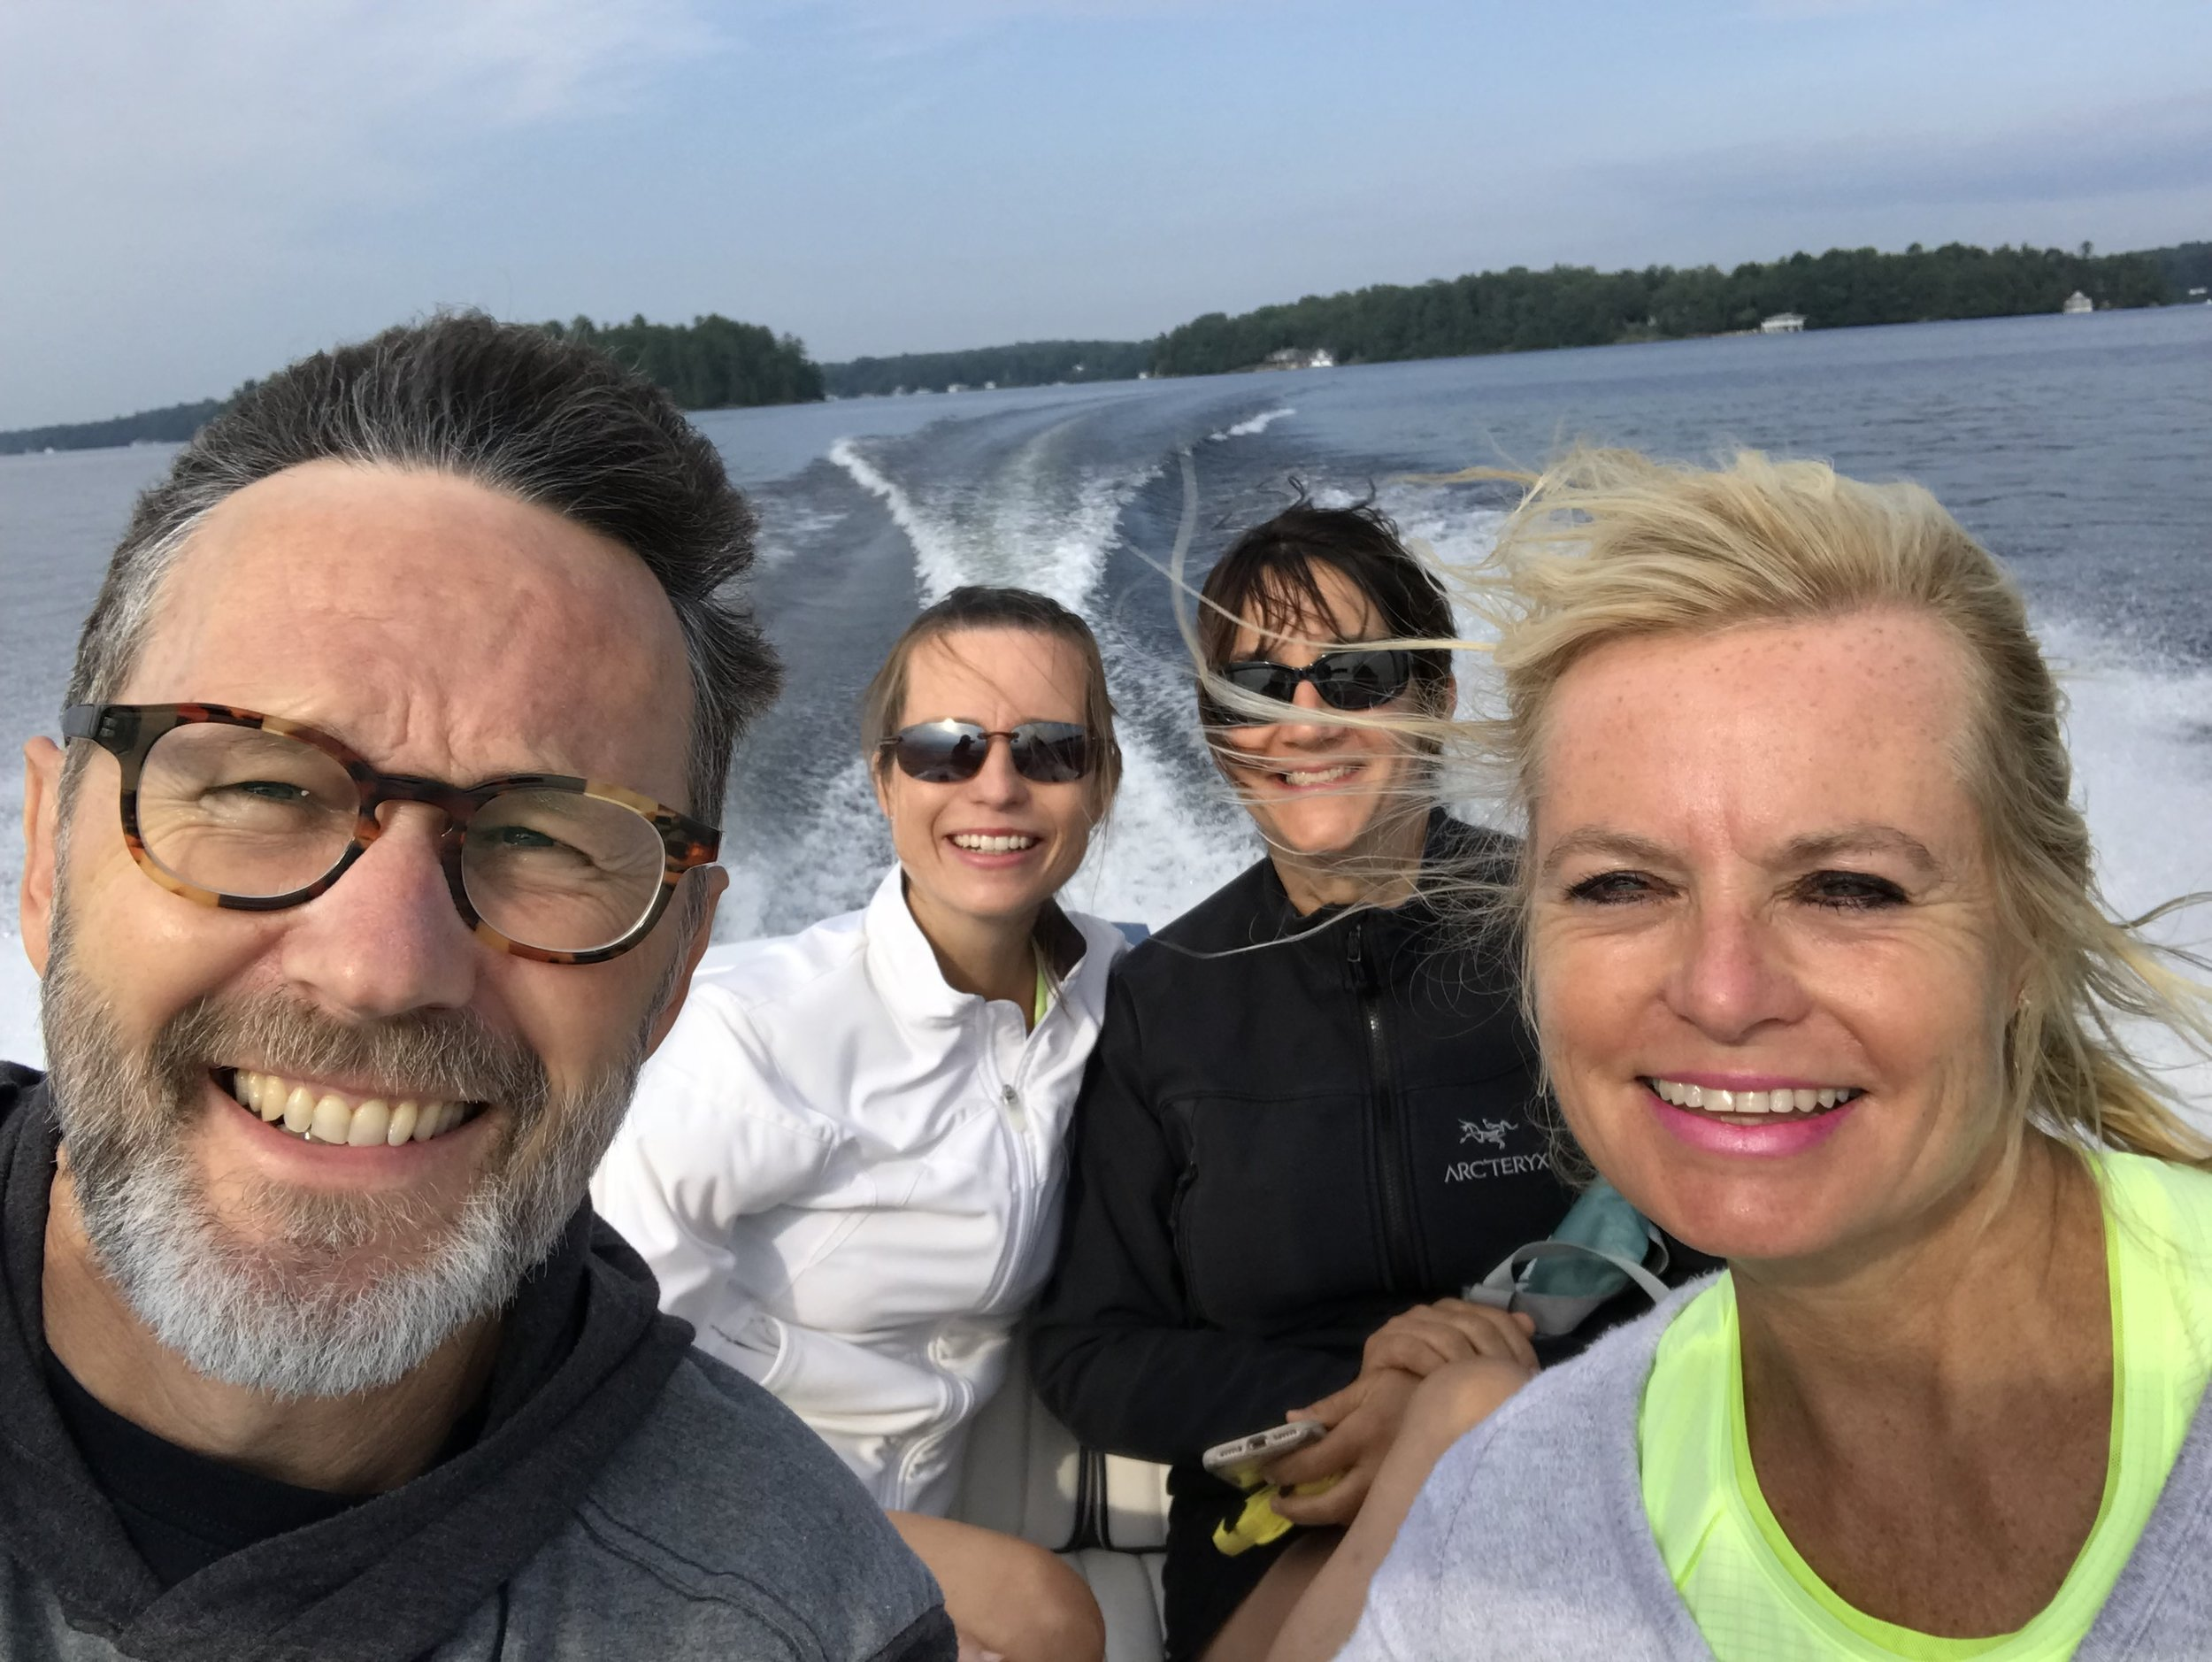 The Annual Jim as Donzi Boat Chauffeur to Rosseau Market.